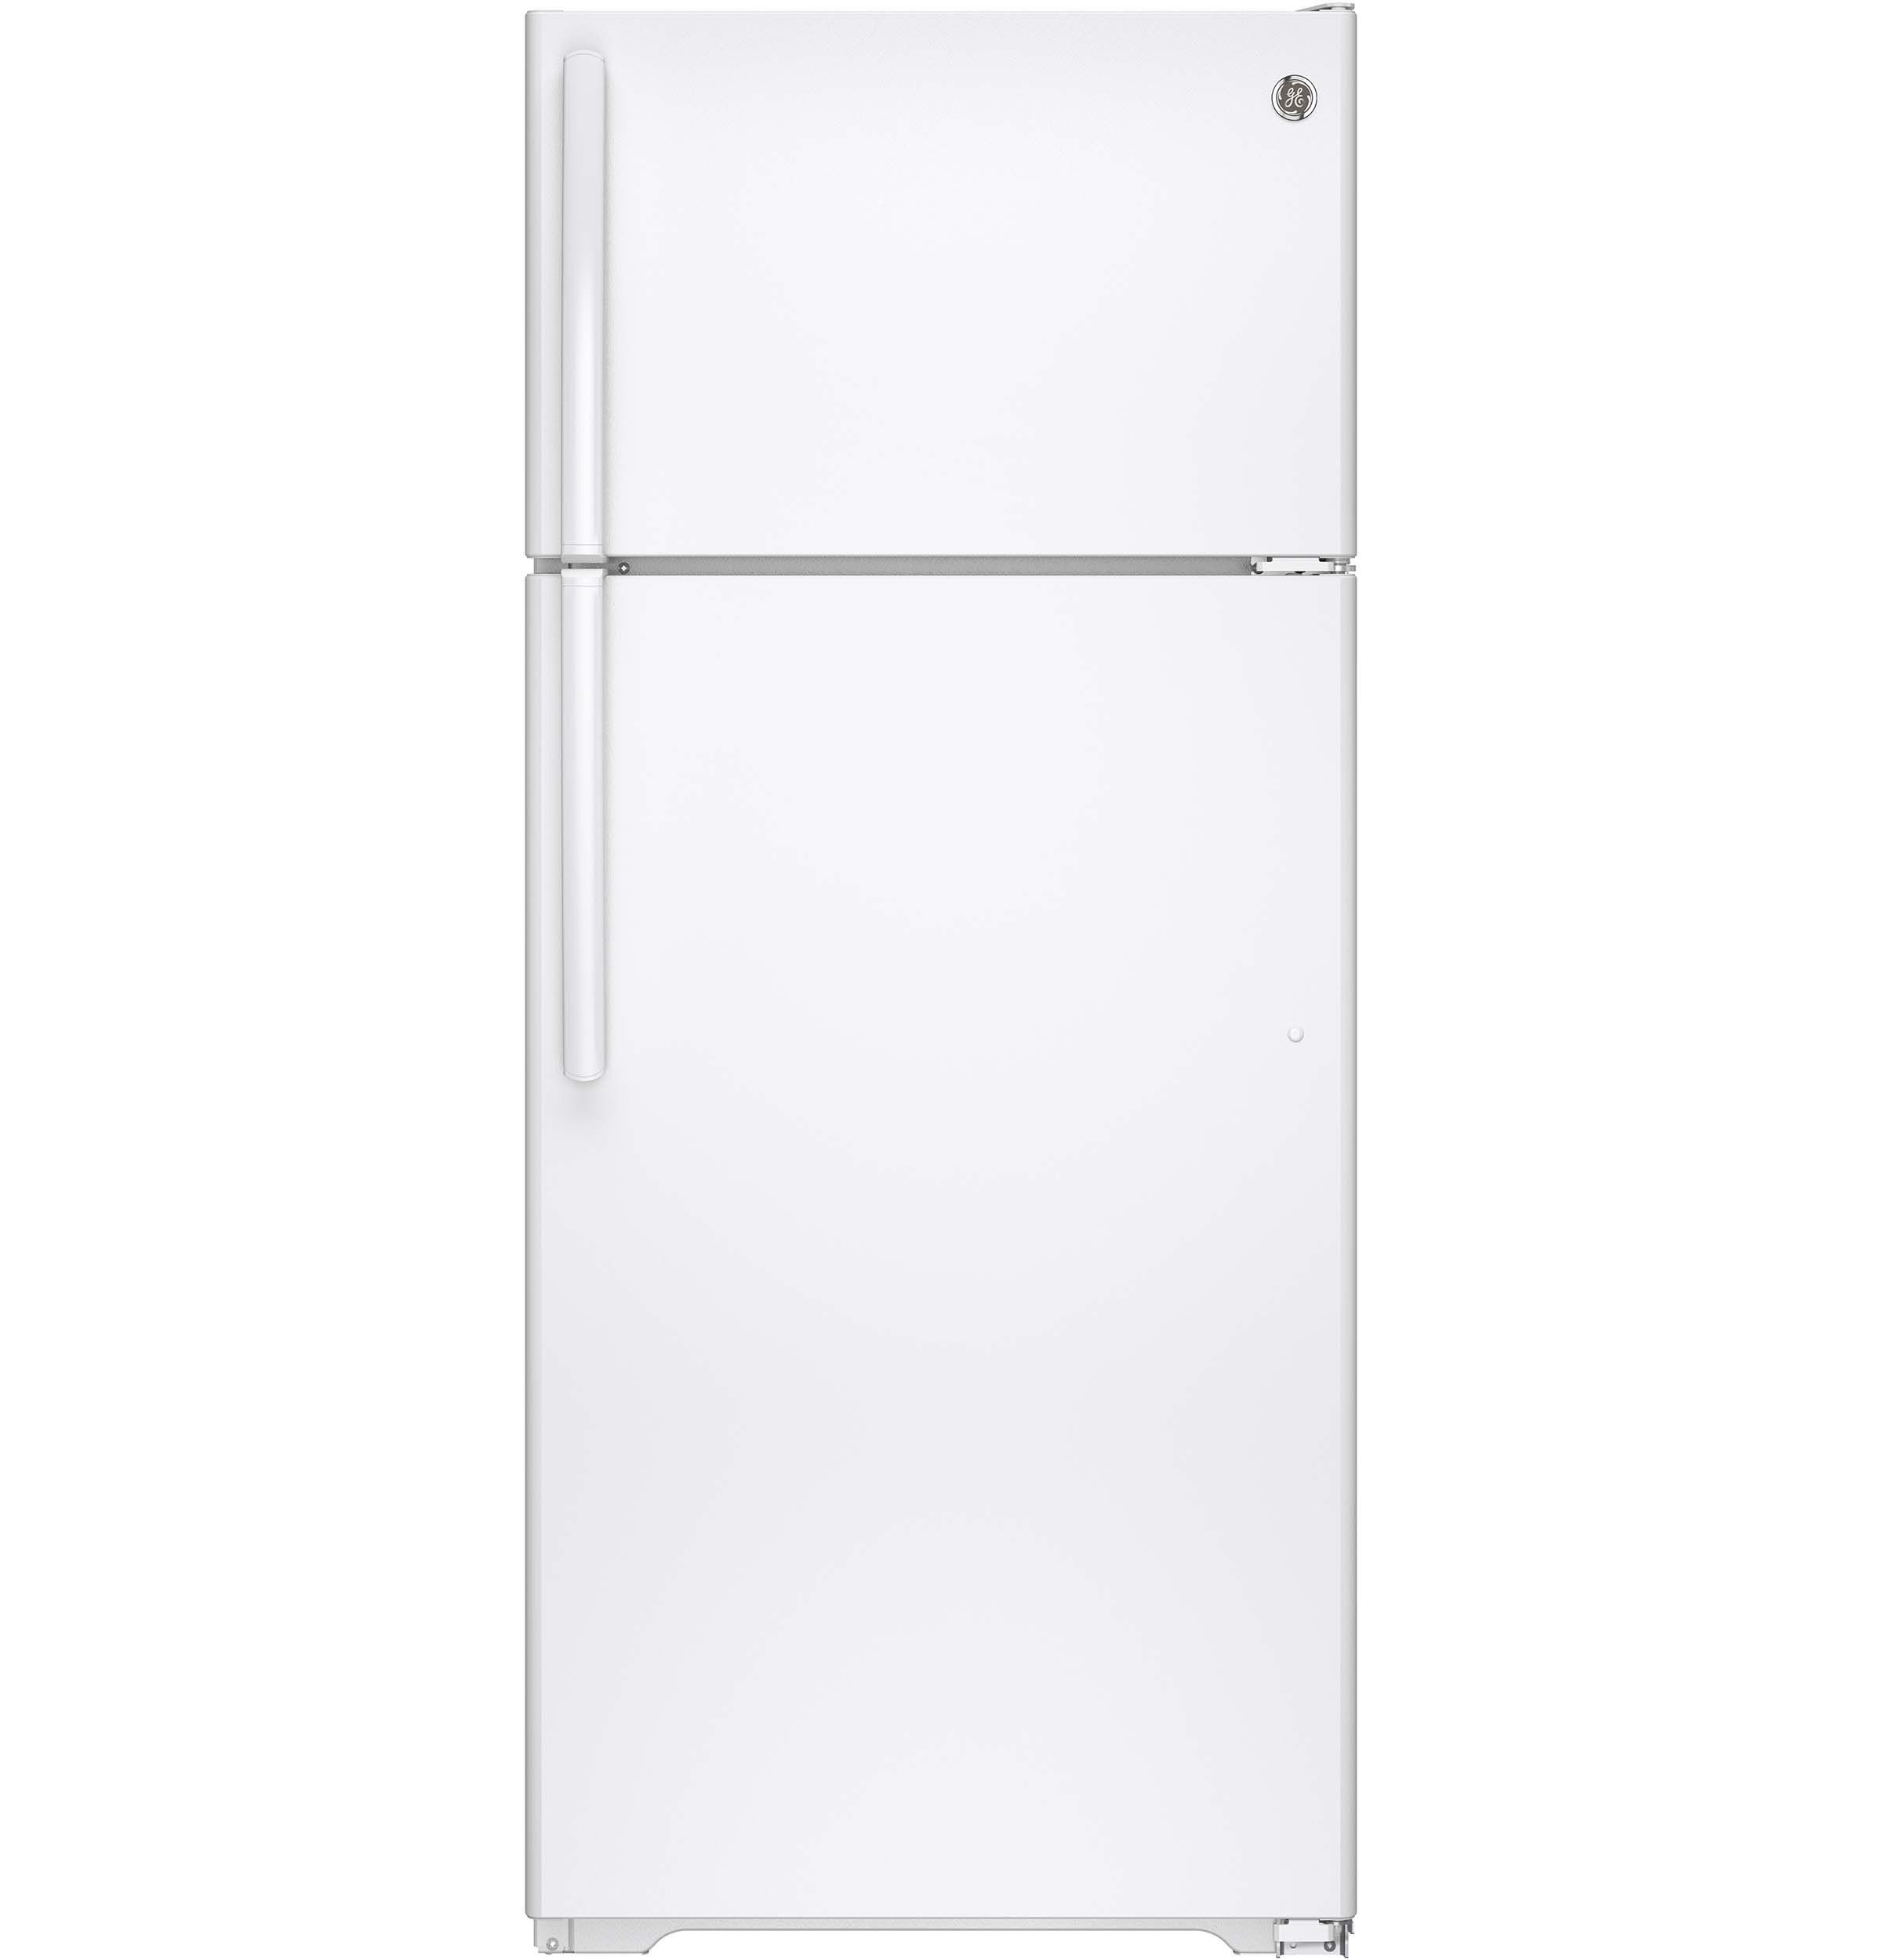 GE 17 5 Cu Ft Top Freezer Refrigerator GTS18GTHWW